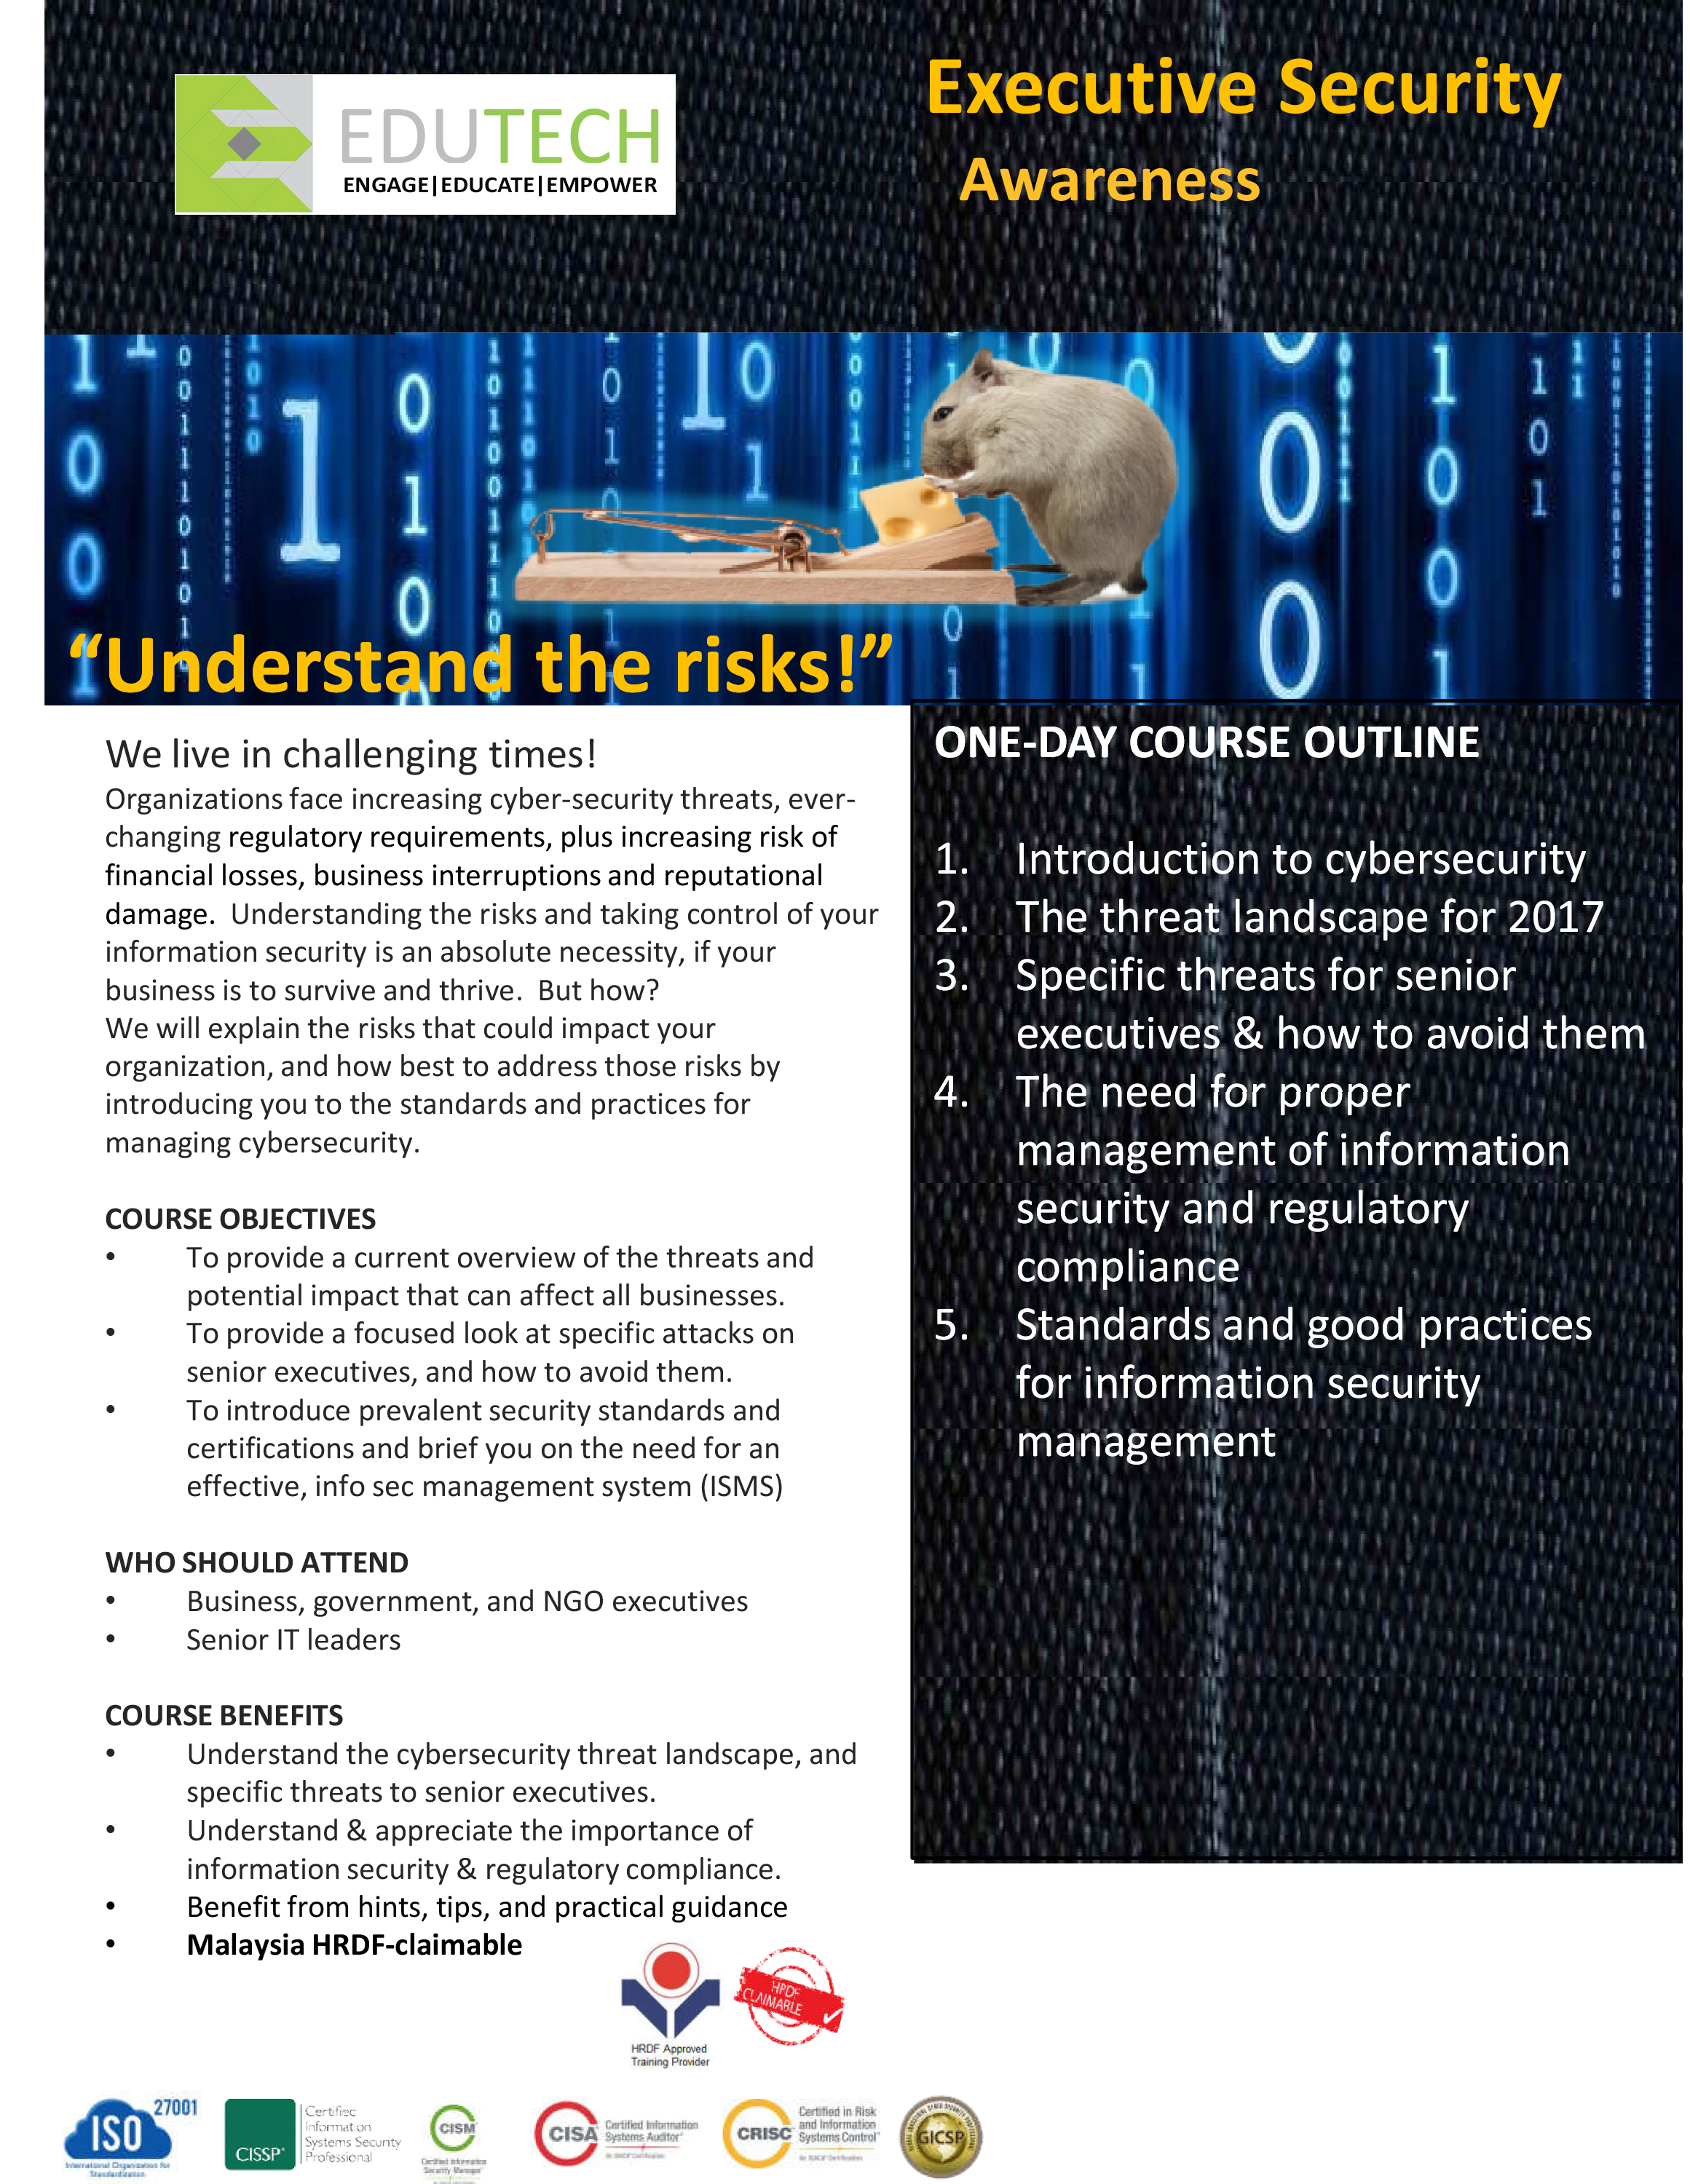 Cyber Security Awareness for Executives